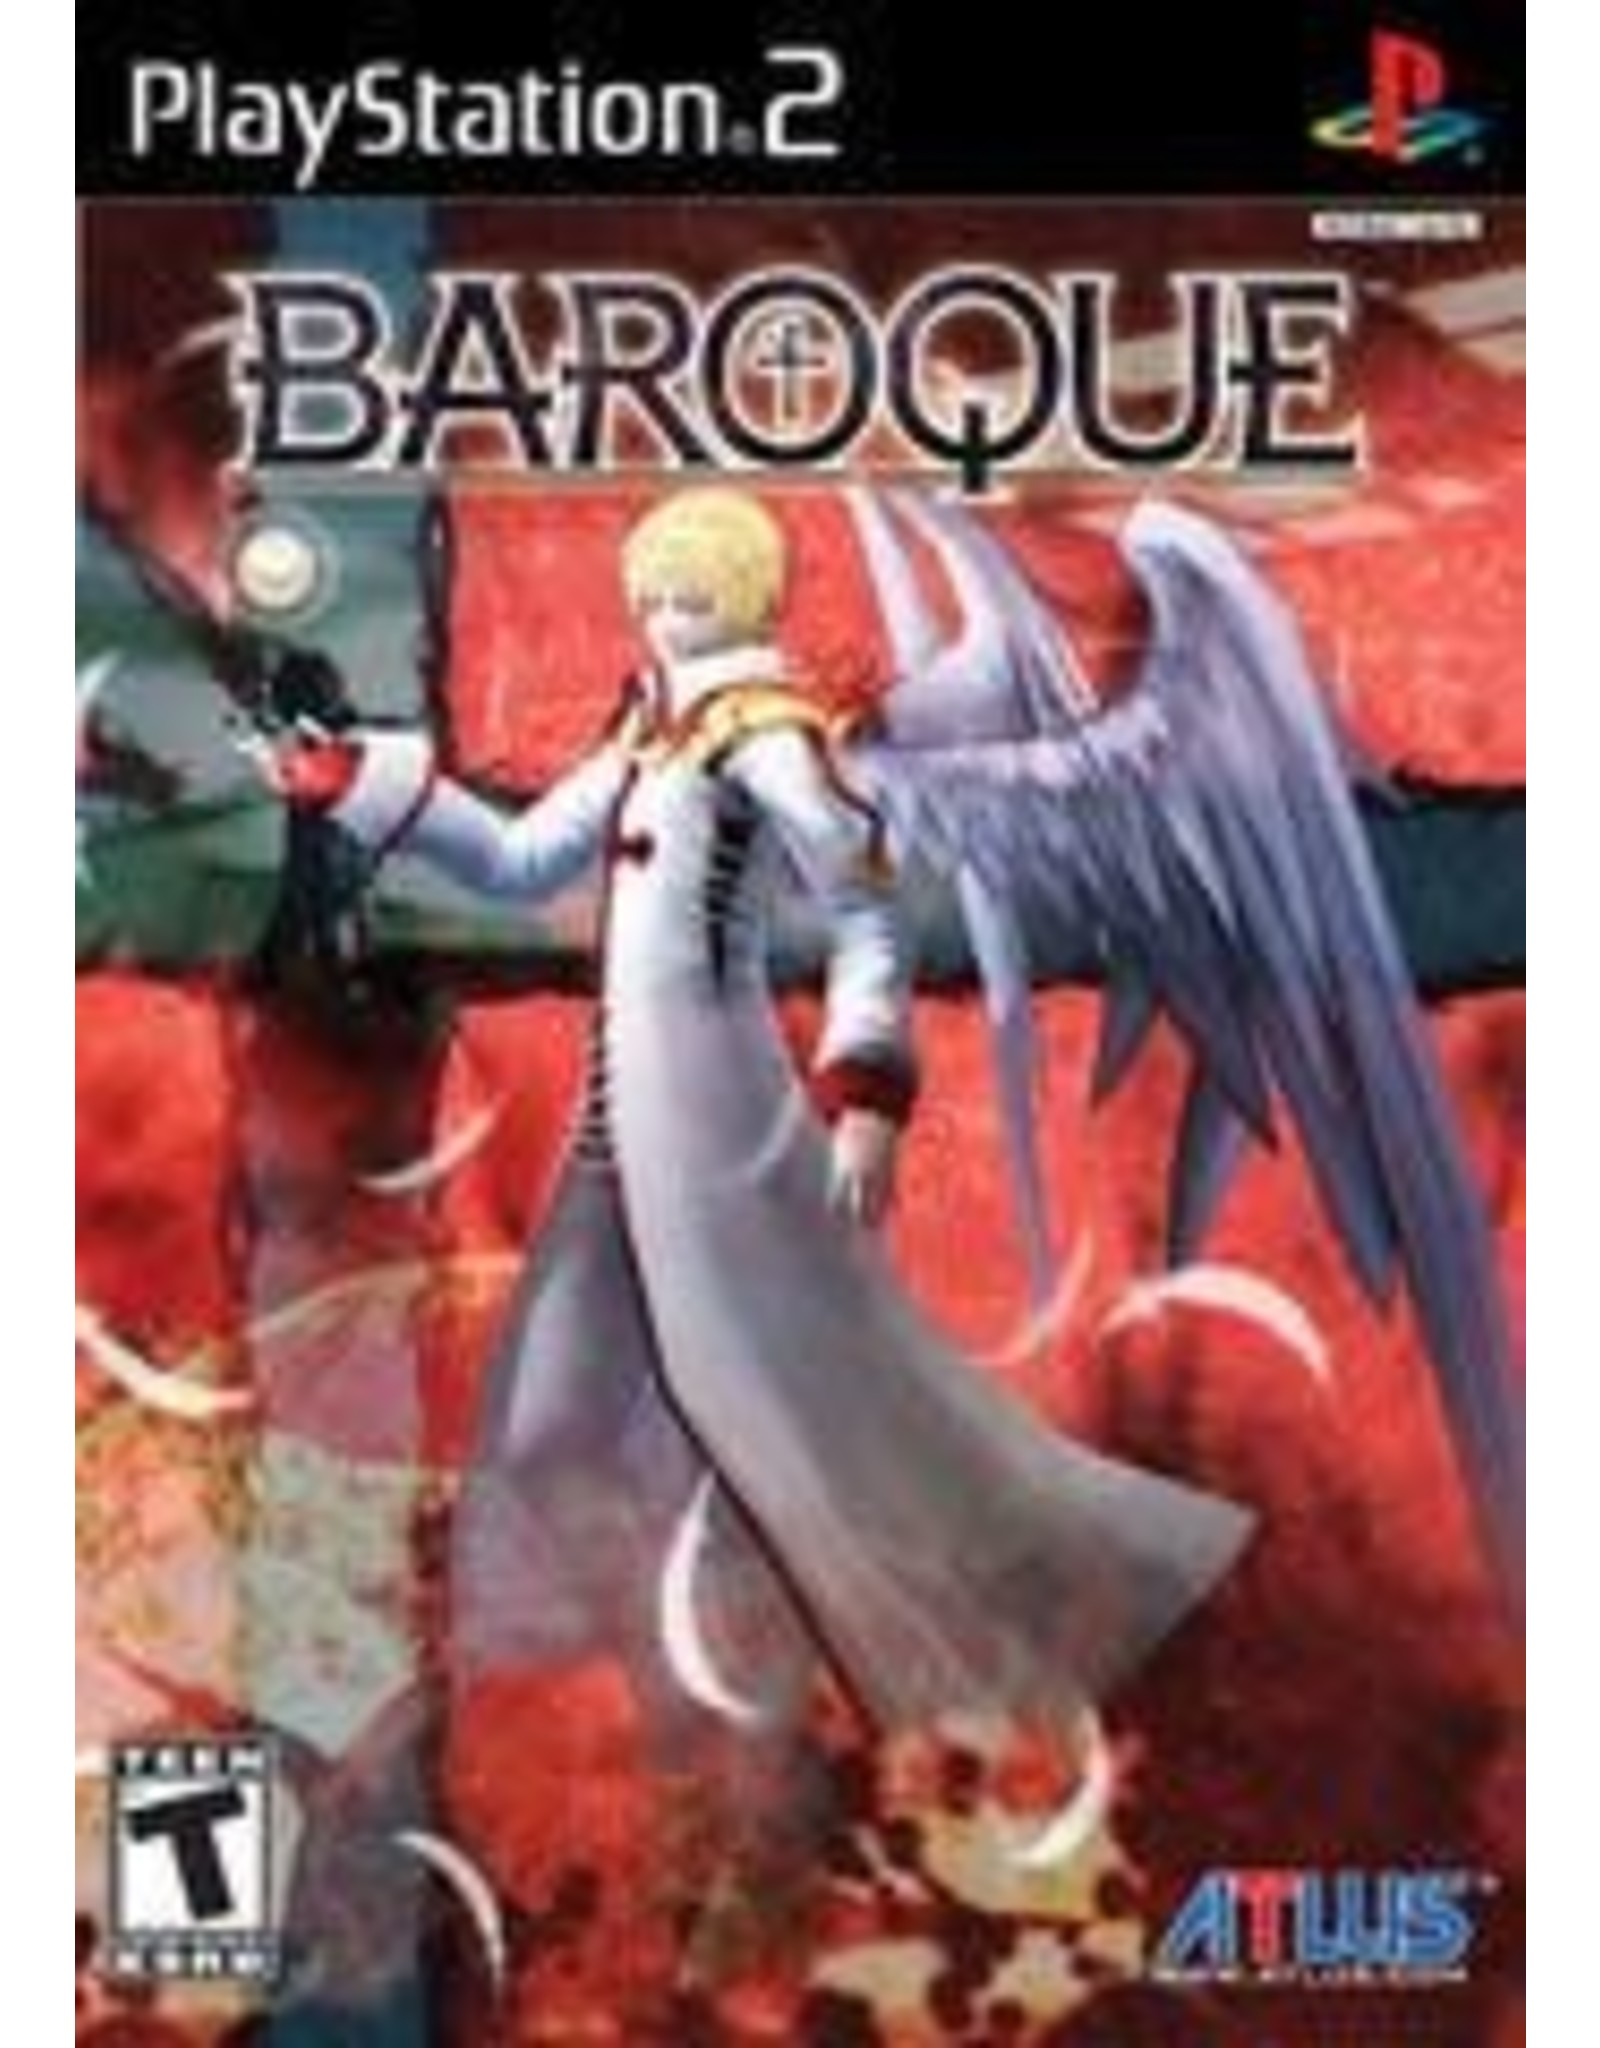 Playstation 2 Baroque (CiB)